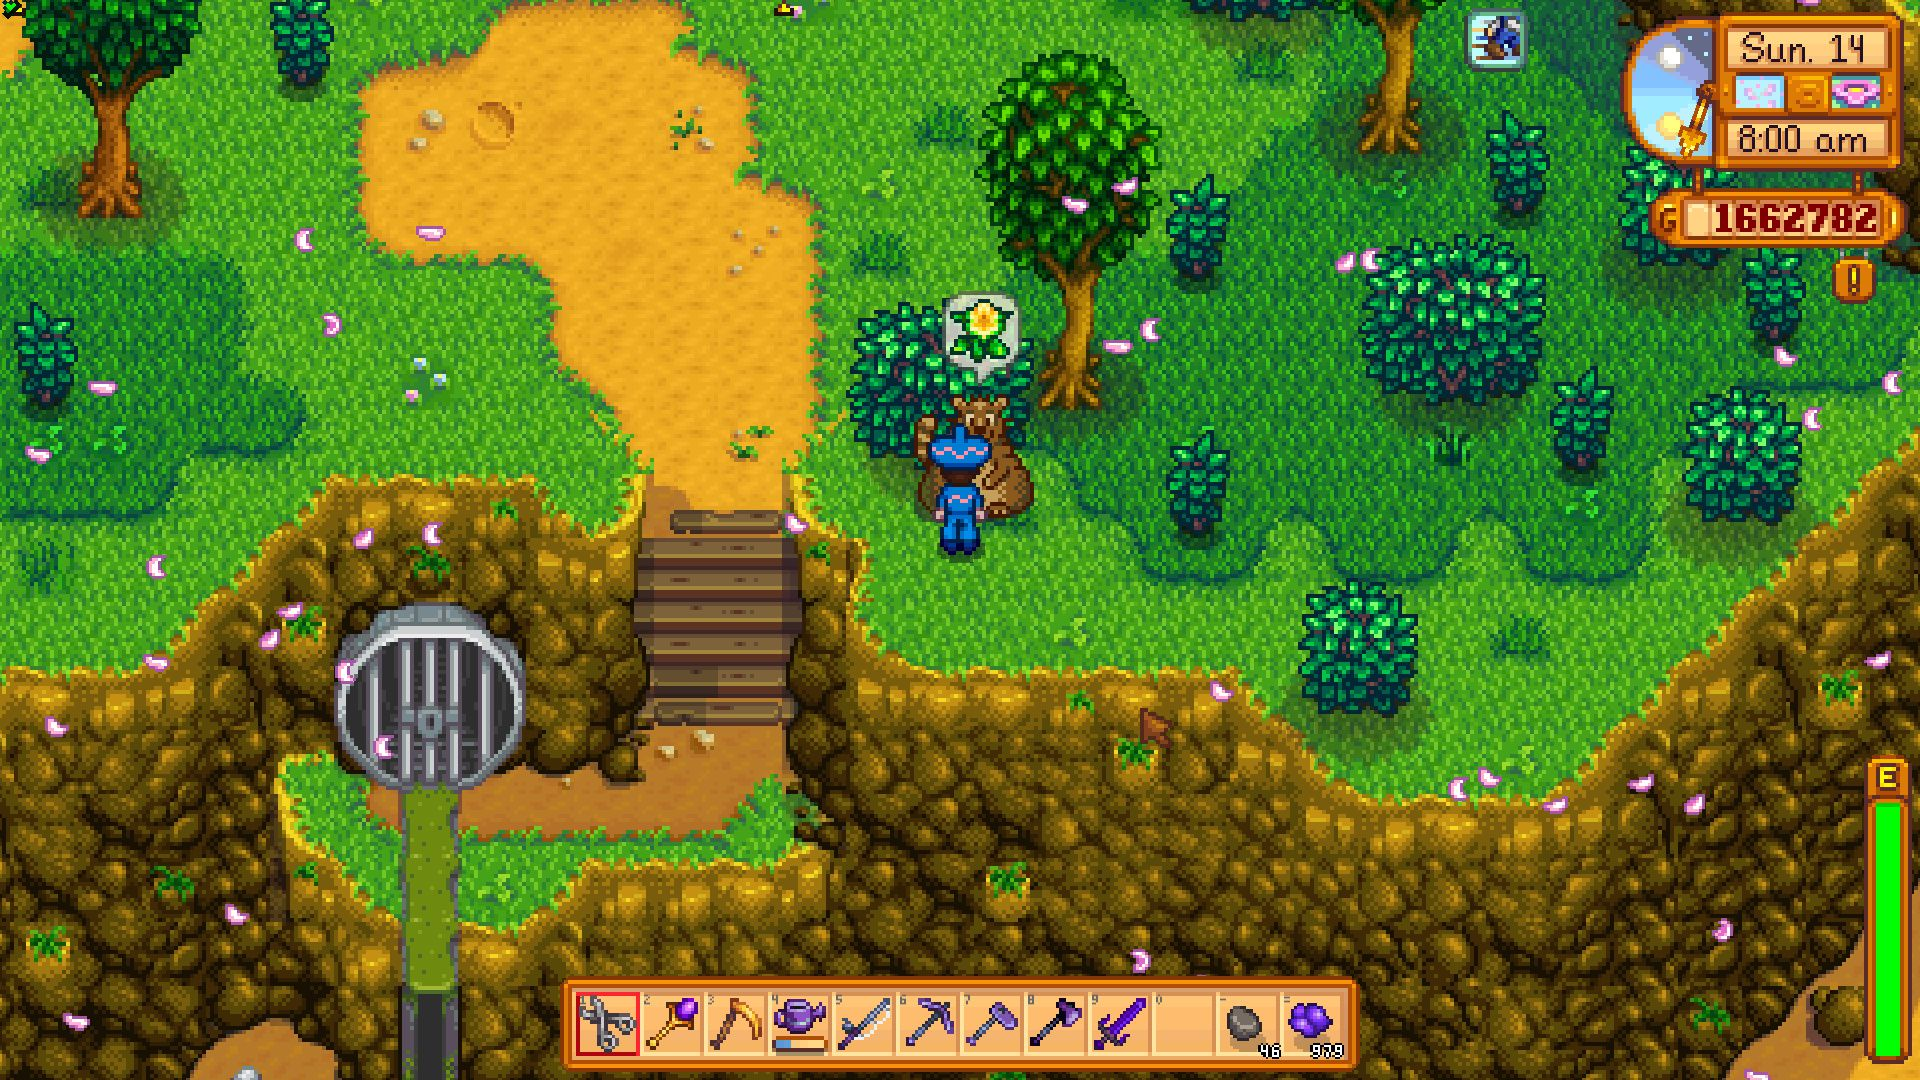 Everything You Need To Know About The Trash Bear In Stardew Valley If you want to get there, you need a stardew valley sewer key. the trash bear in stardew valley